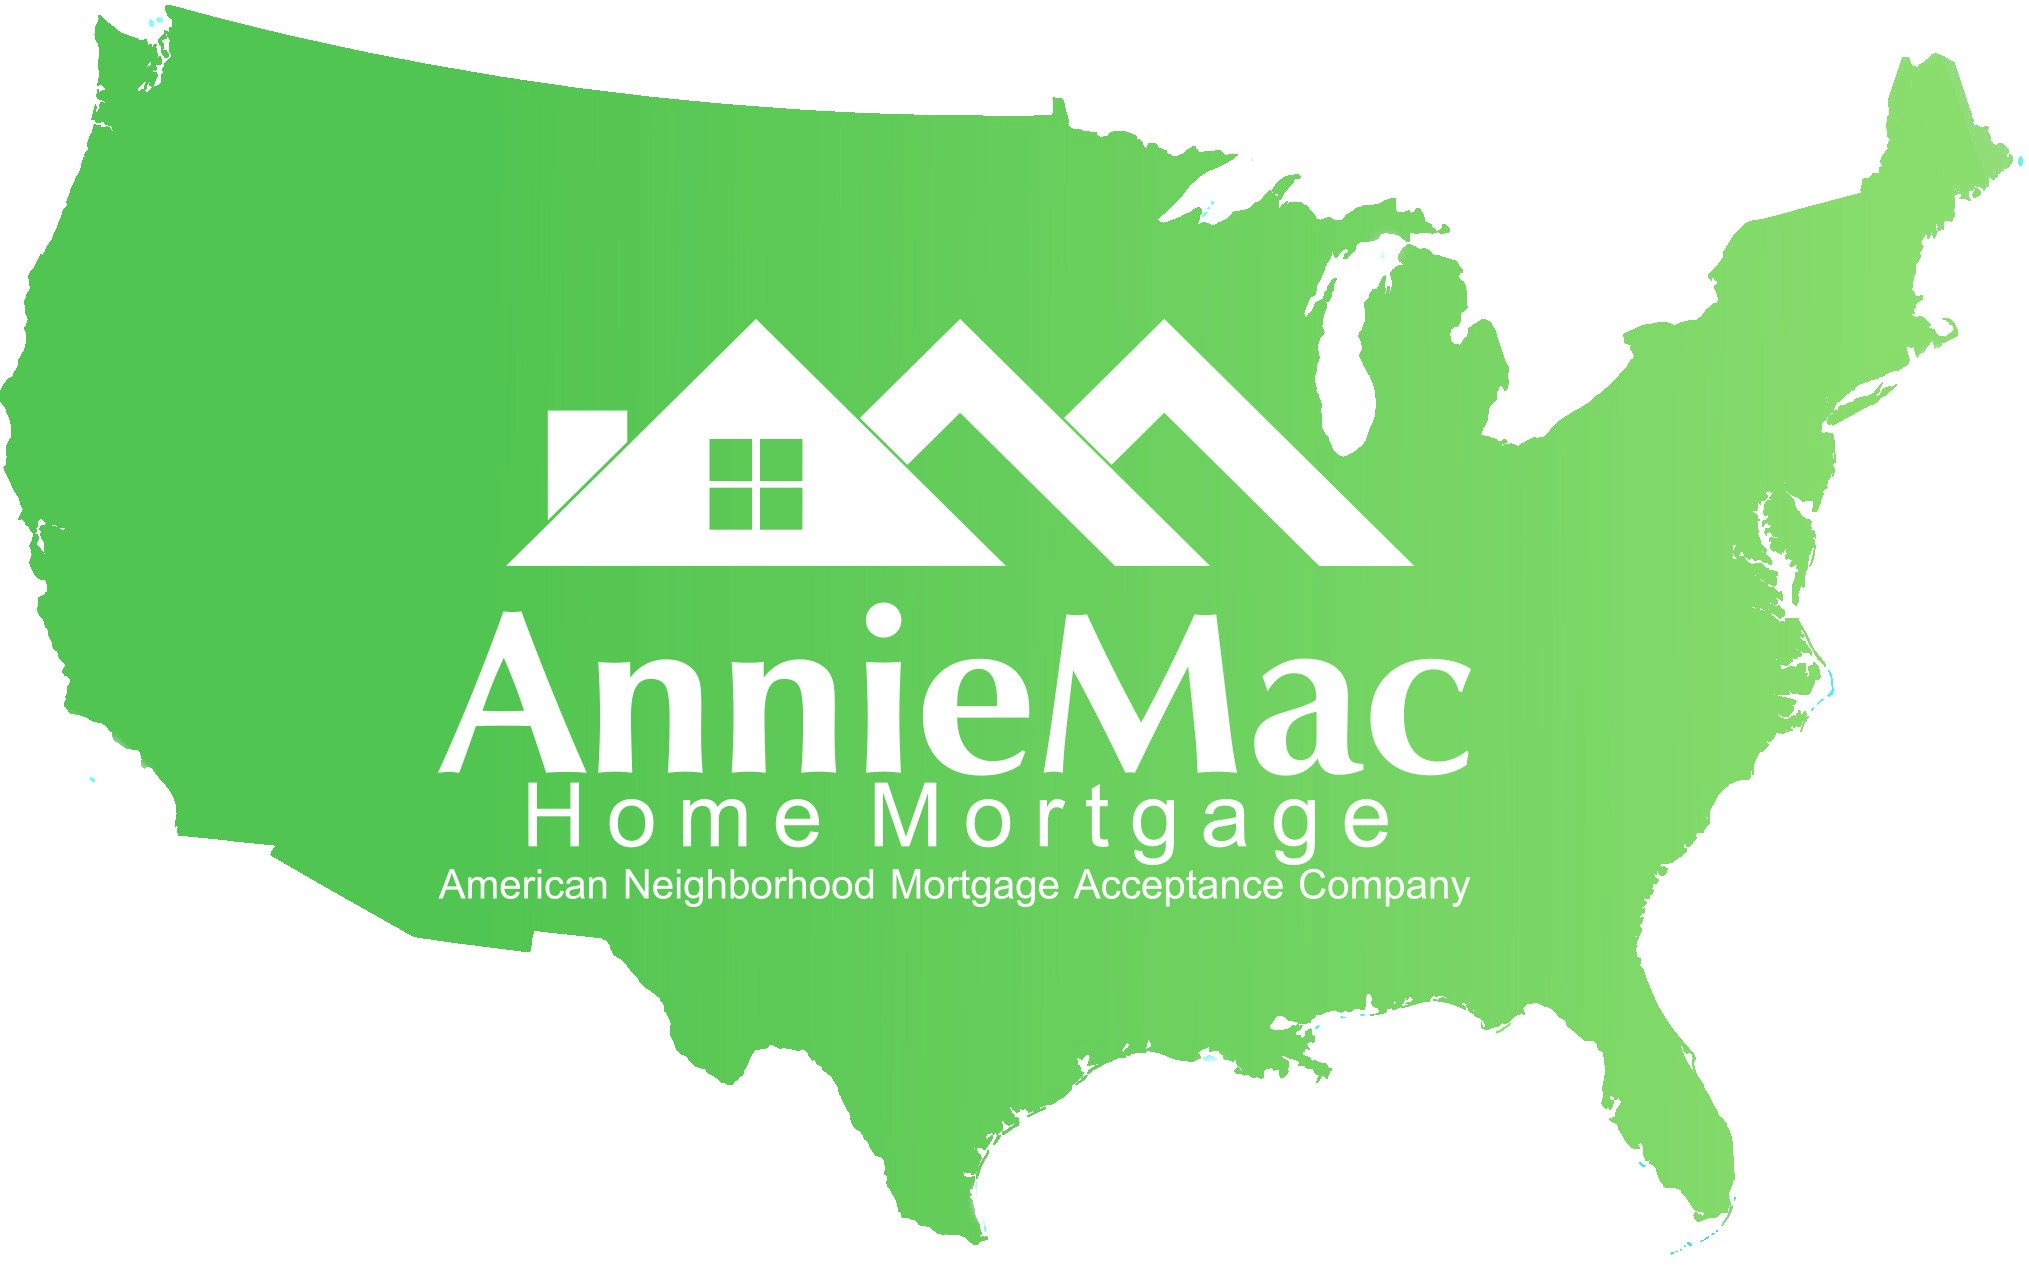 AnnieMac Home Mortgage - East Brunswick image 3